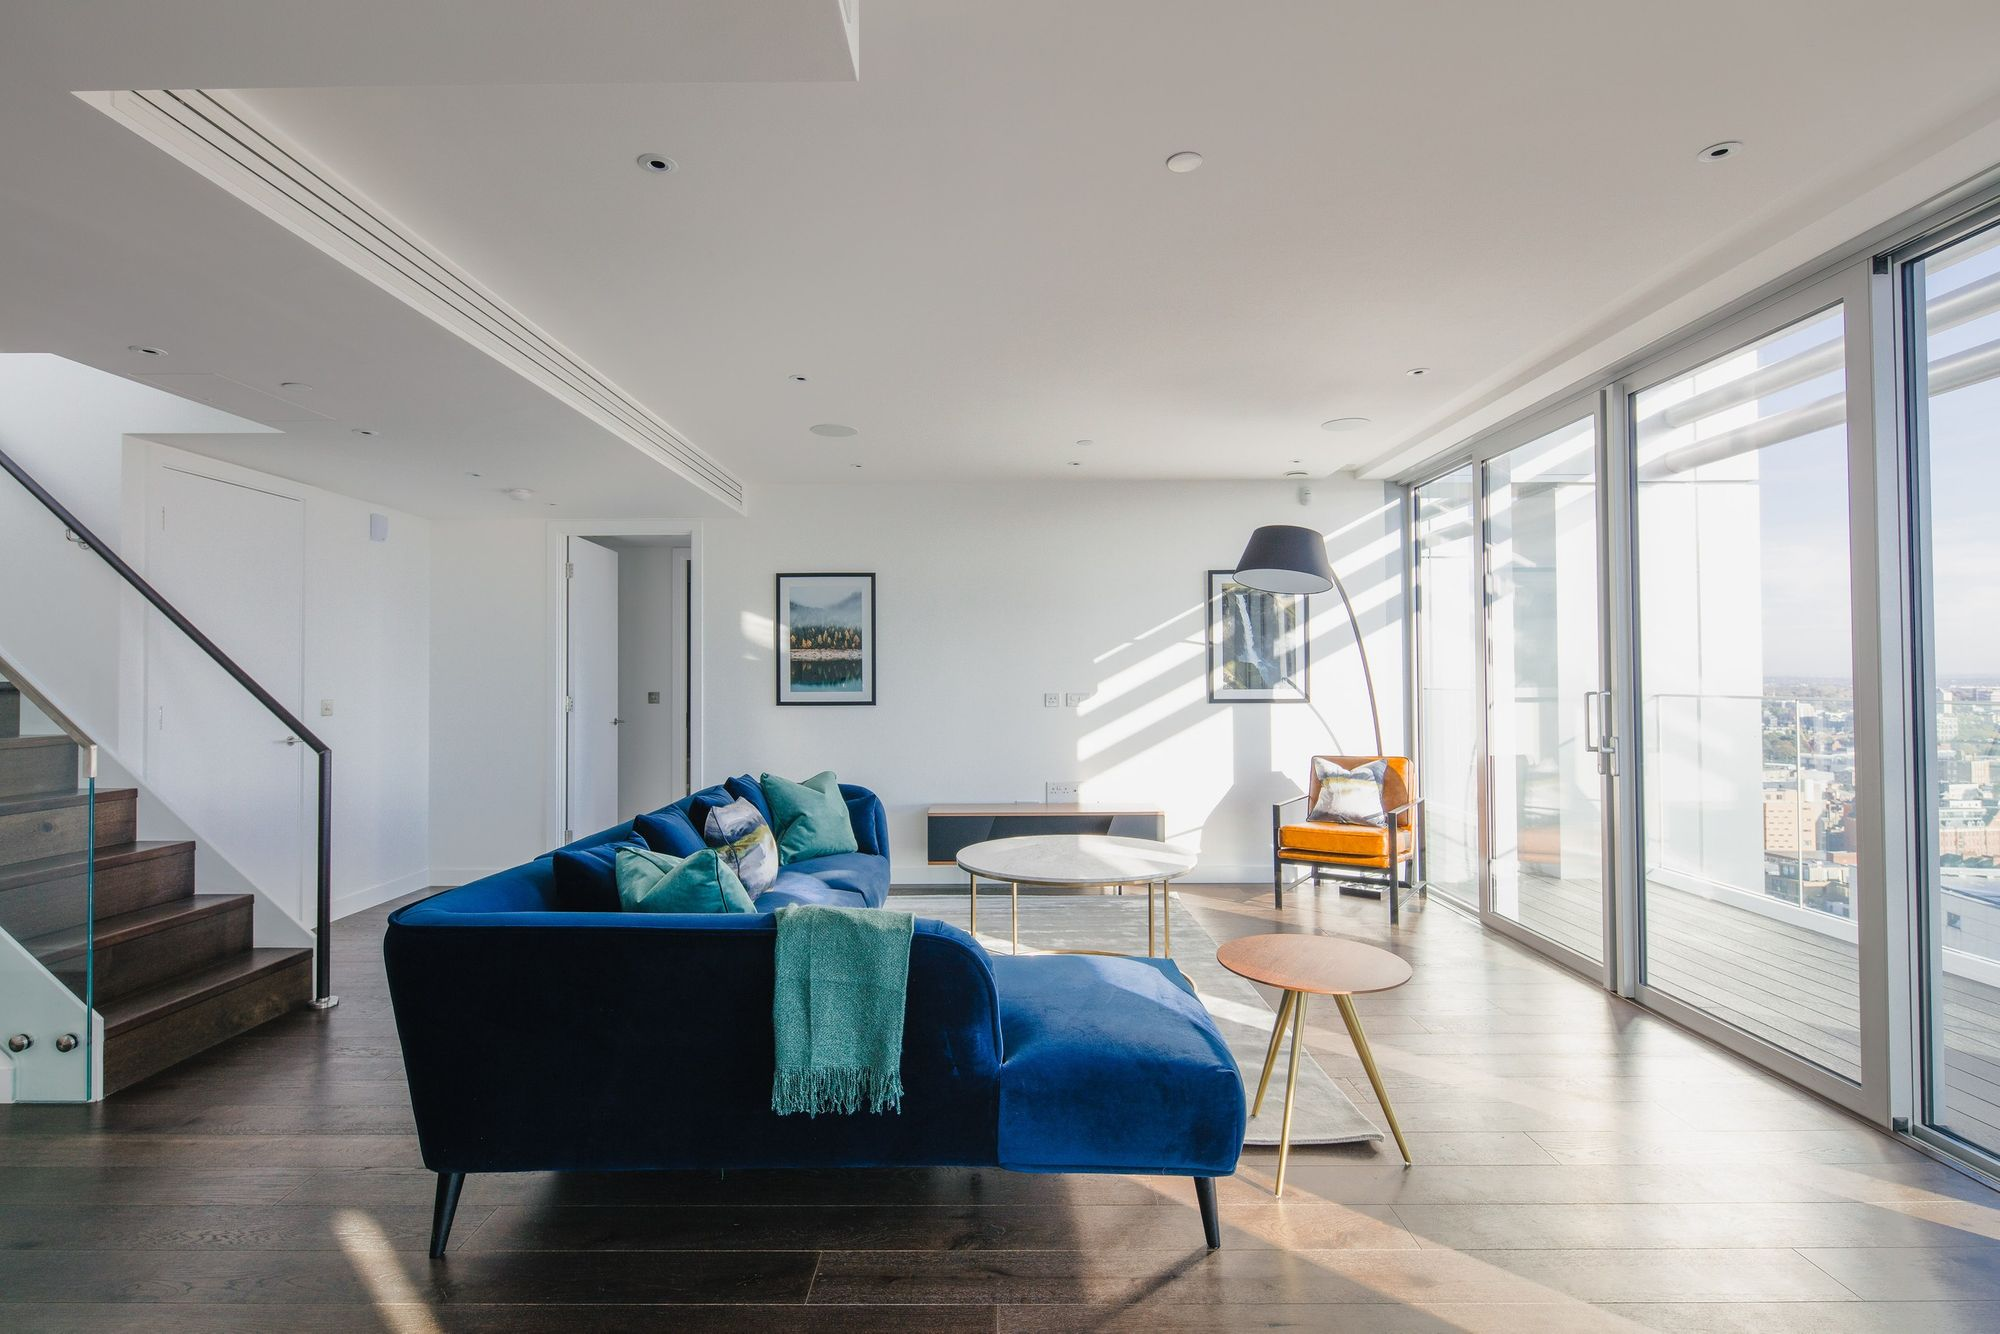 Interior property photography with Efe O